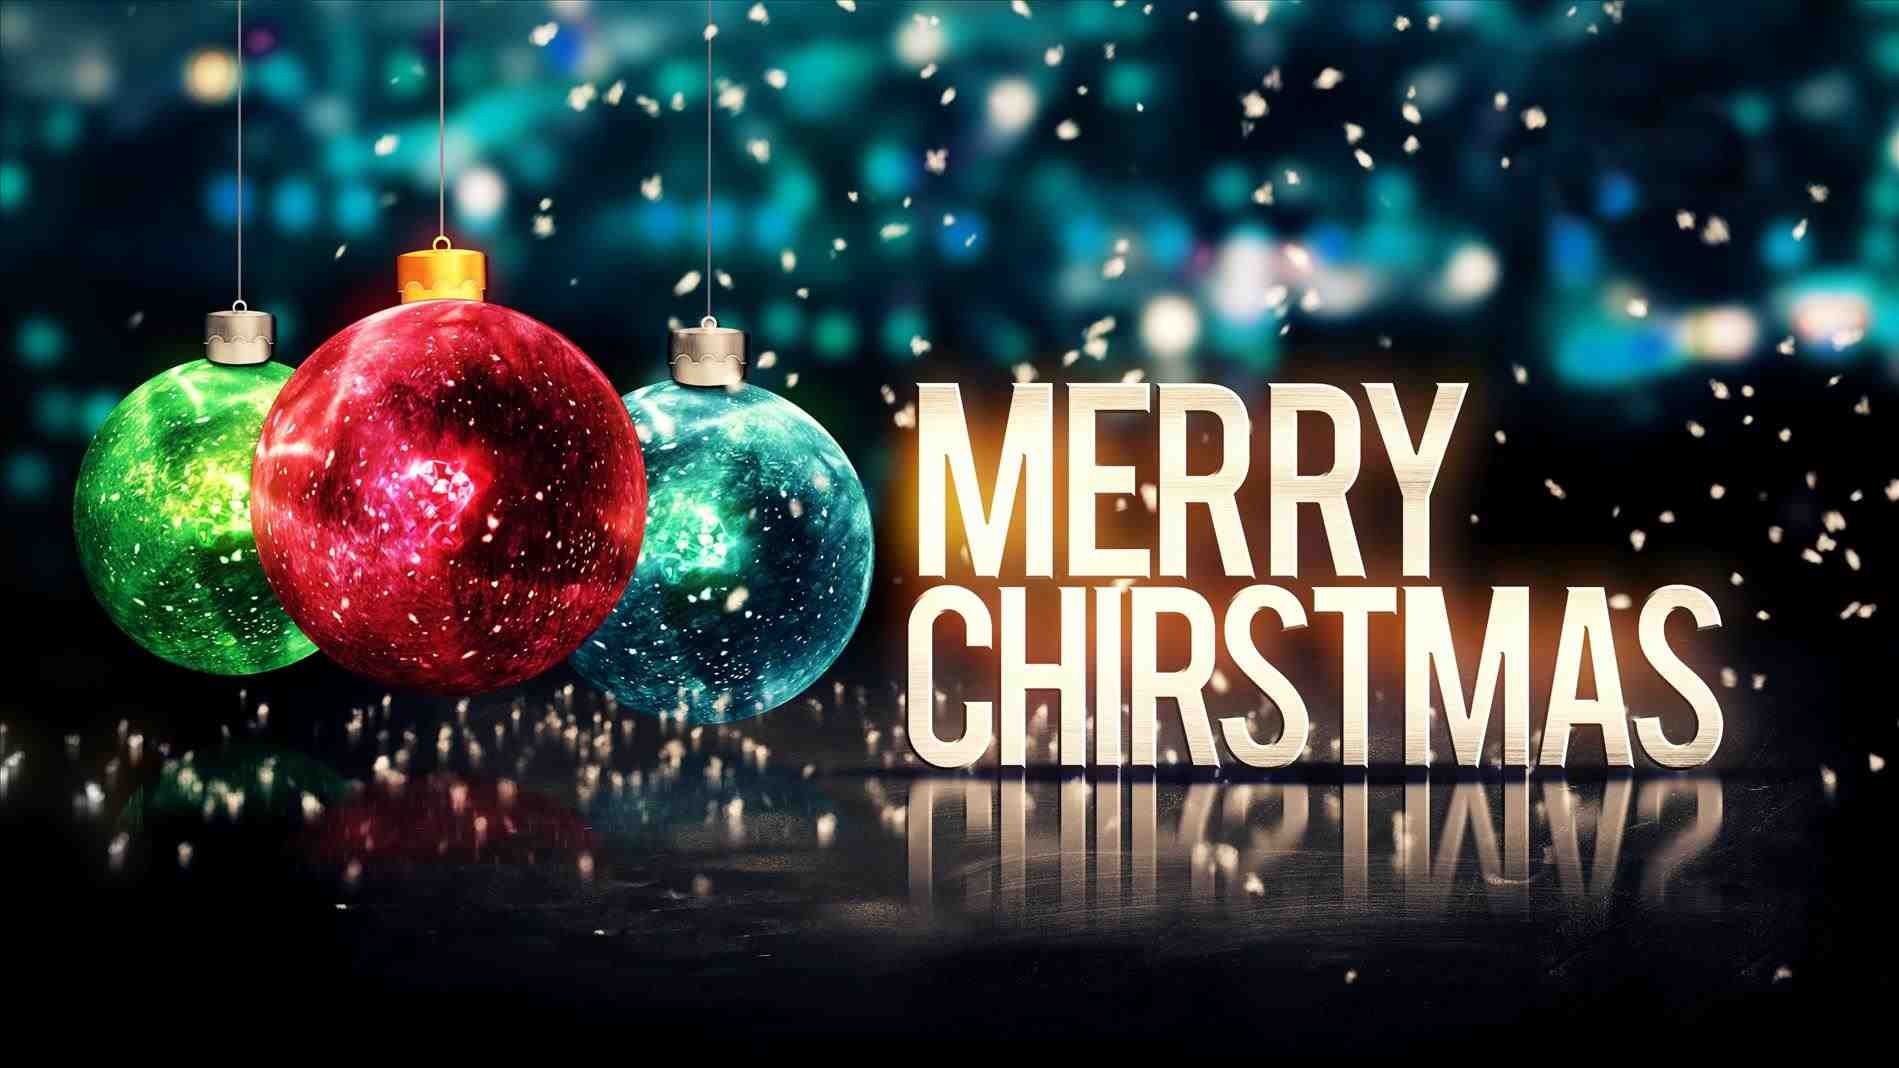 happy christmas free hd wallpapers 2018 download